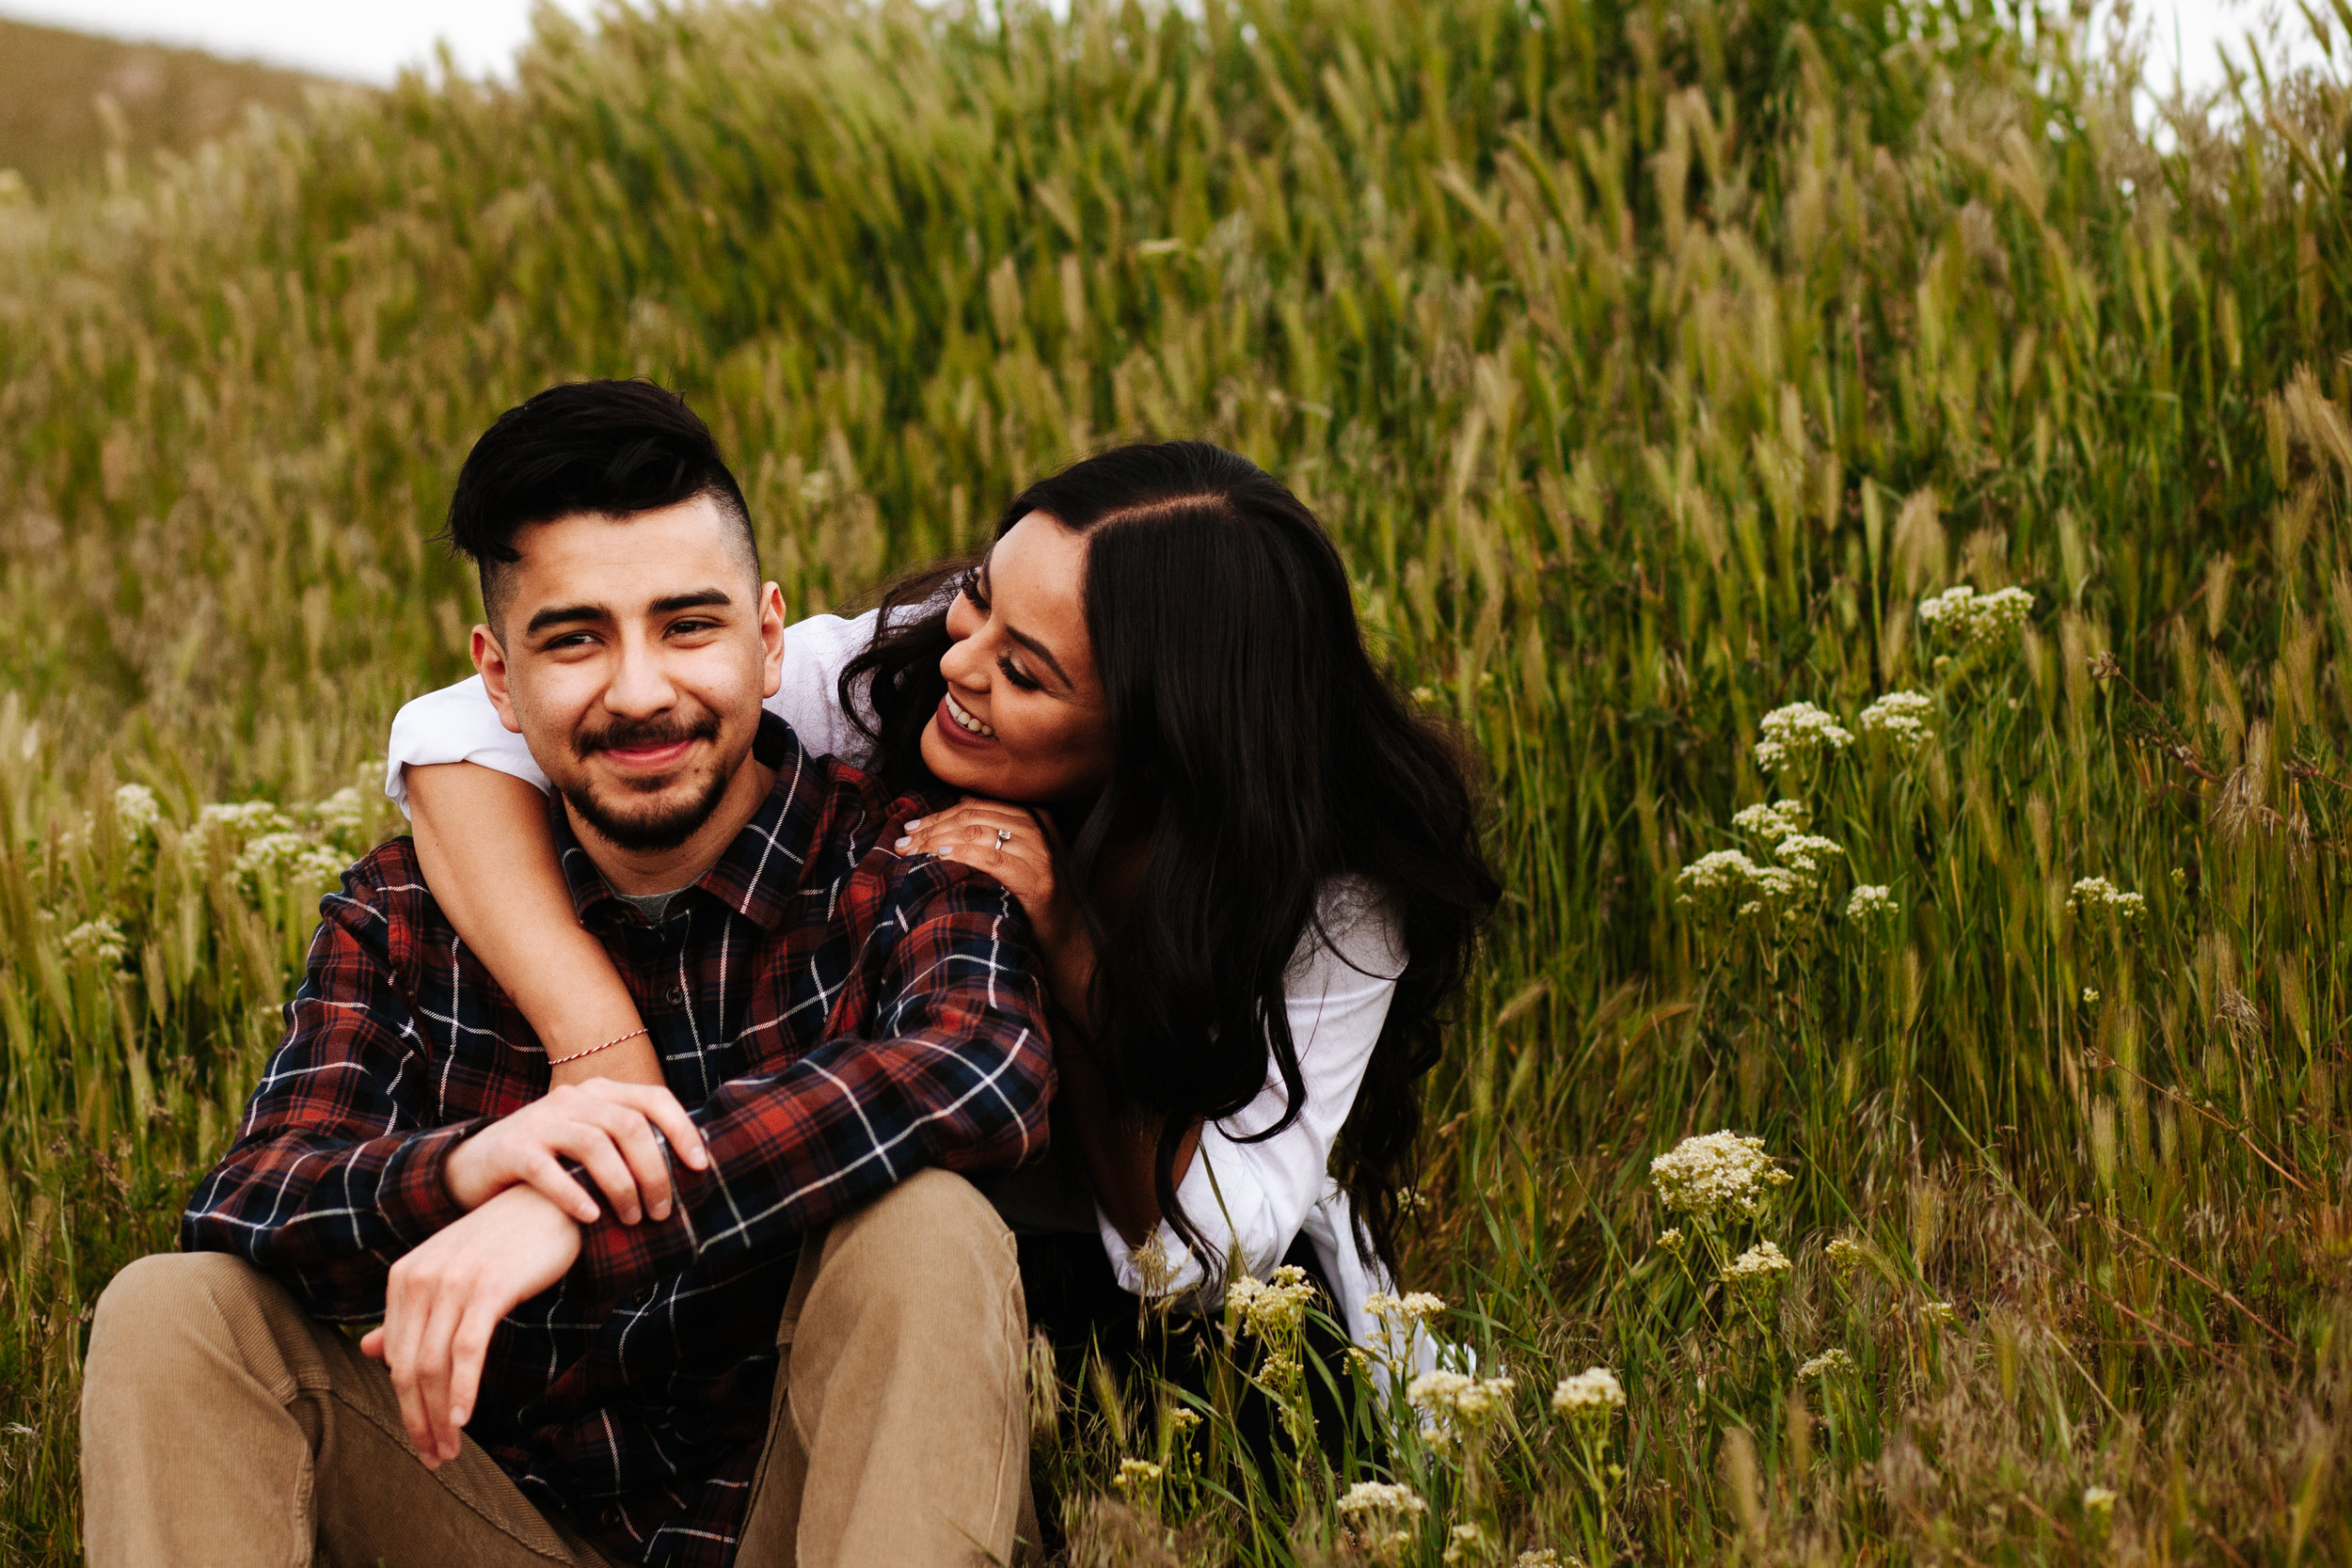 +Grassy Fields +Windy Engagement Sessoin +Utah Engagement  Photographer +SLC Engagement +Utah Wedding Photographer +Marina Rey Photo-7860.jpg